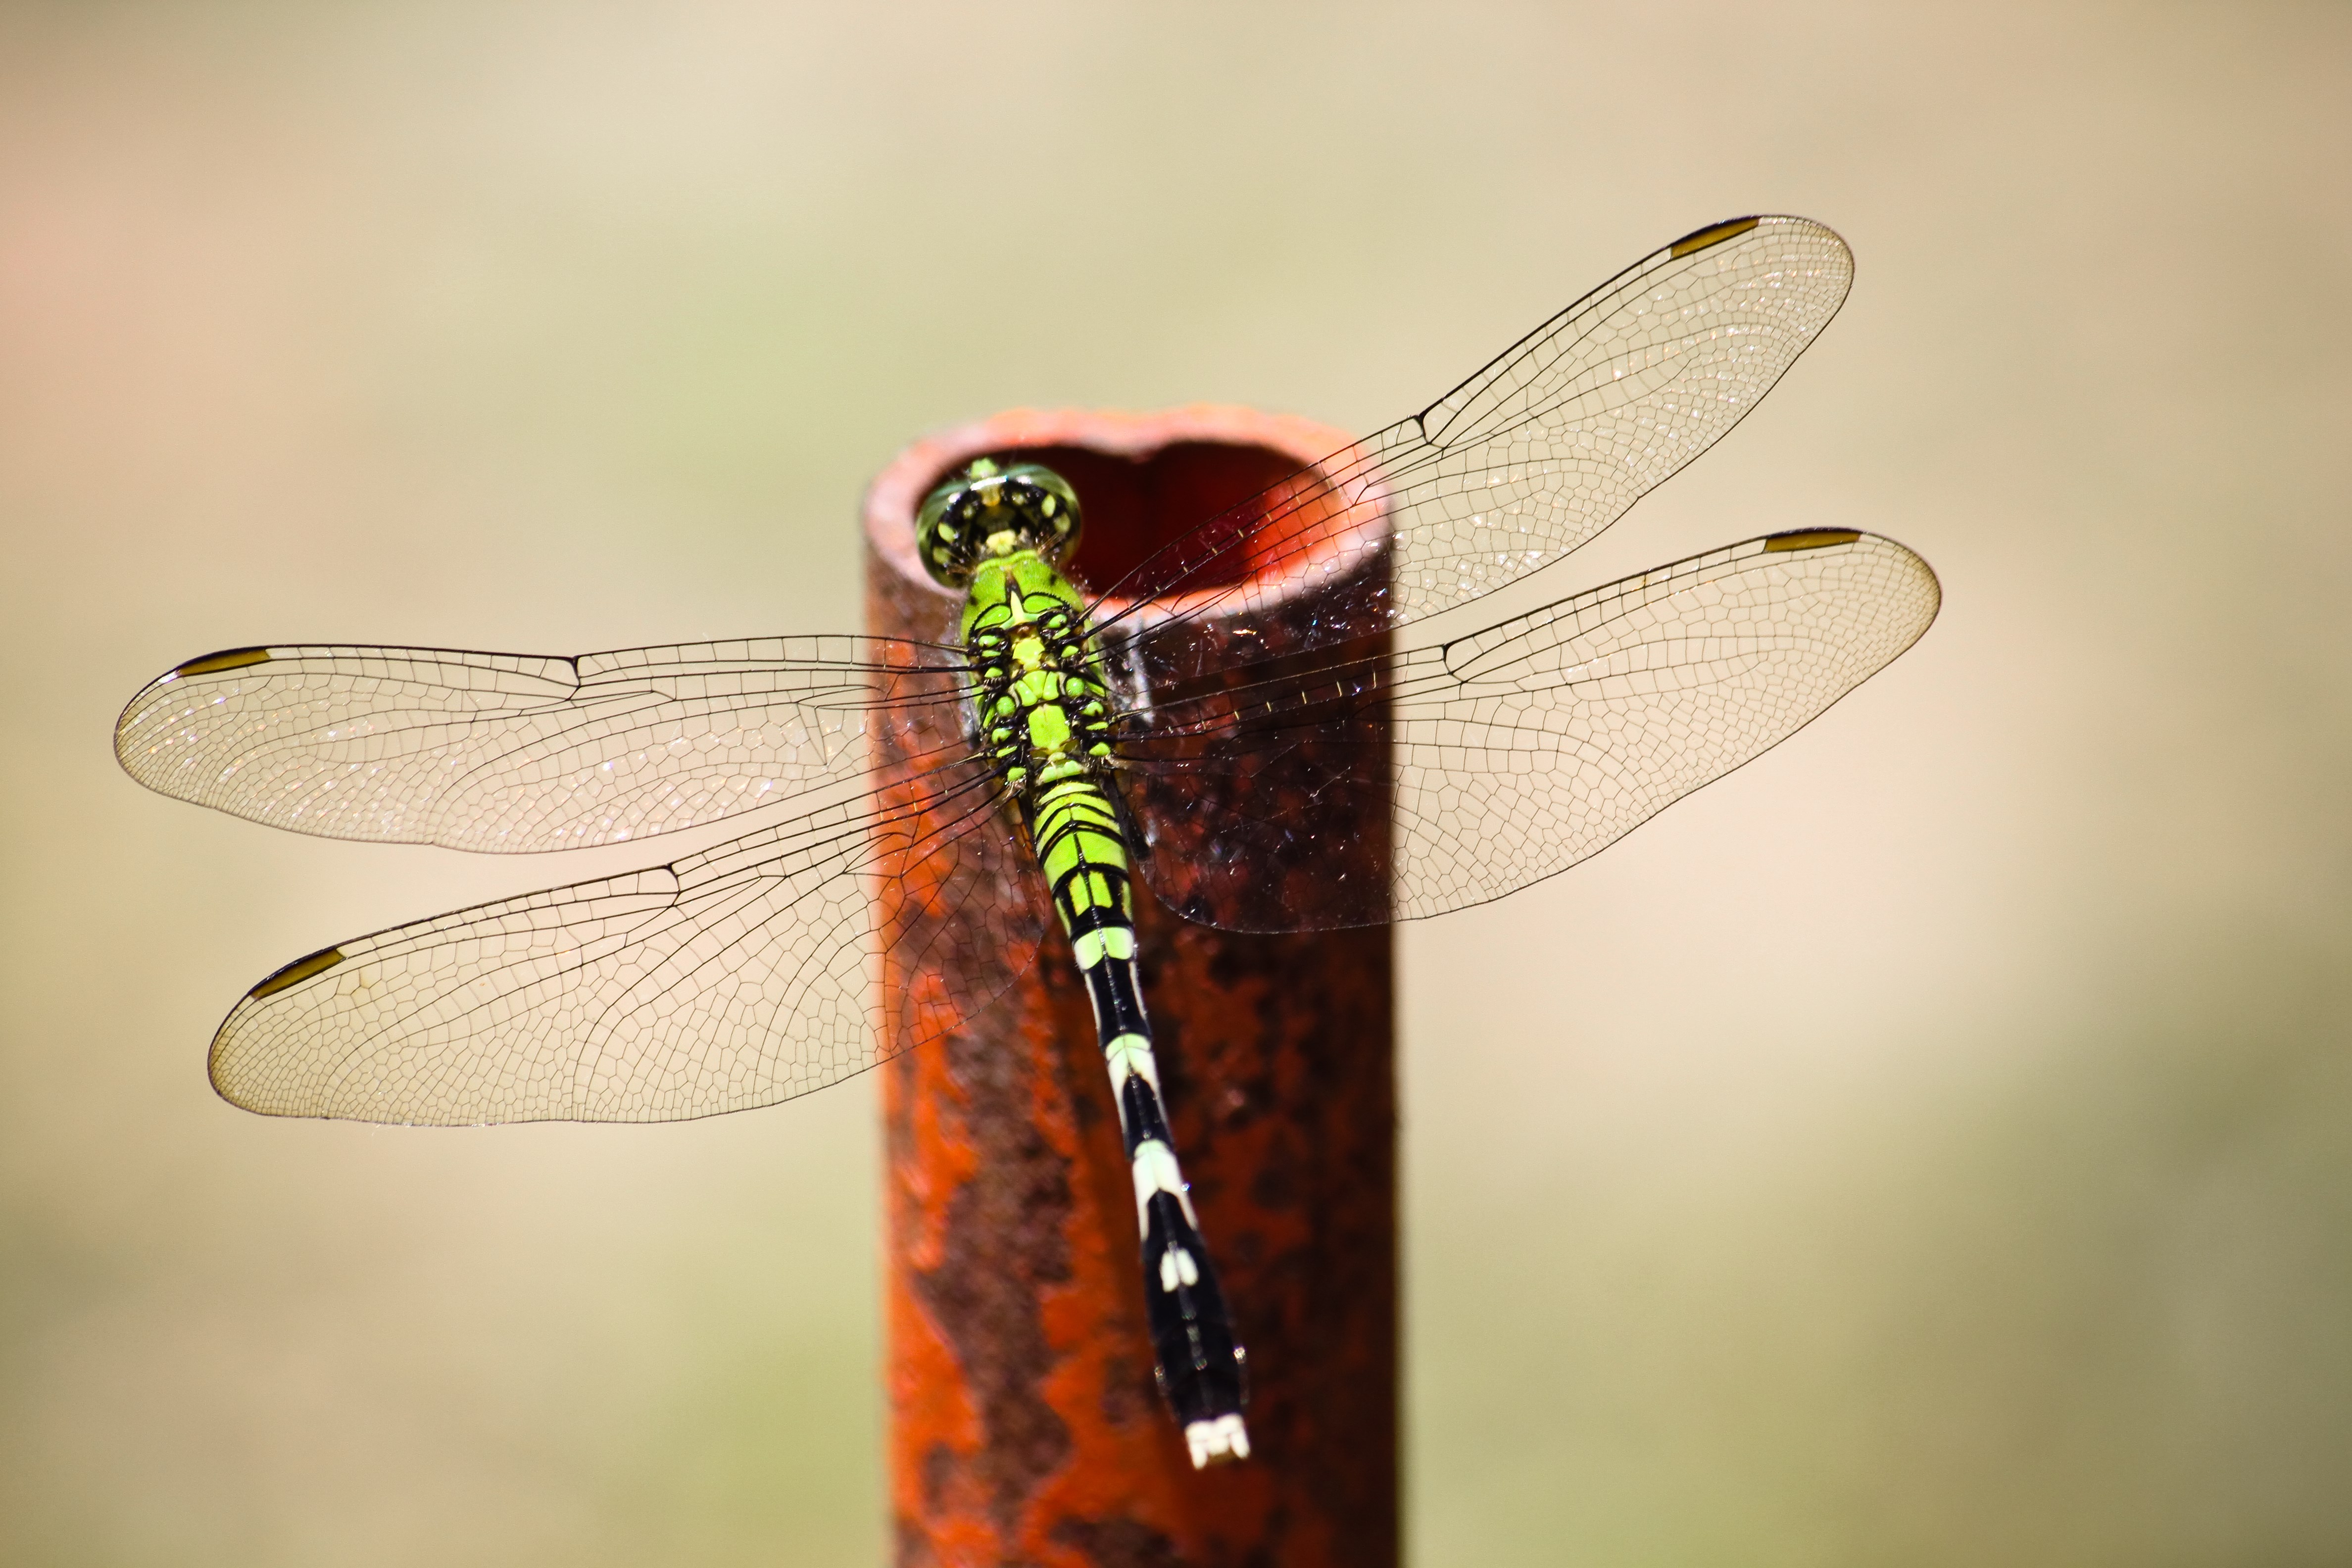 dragonfly-picture-1080p-windows-kB-Irwin-London-wallpaper-wp3804906